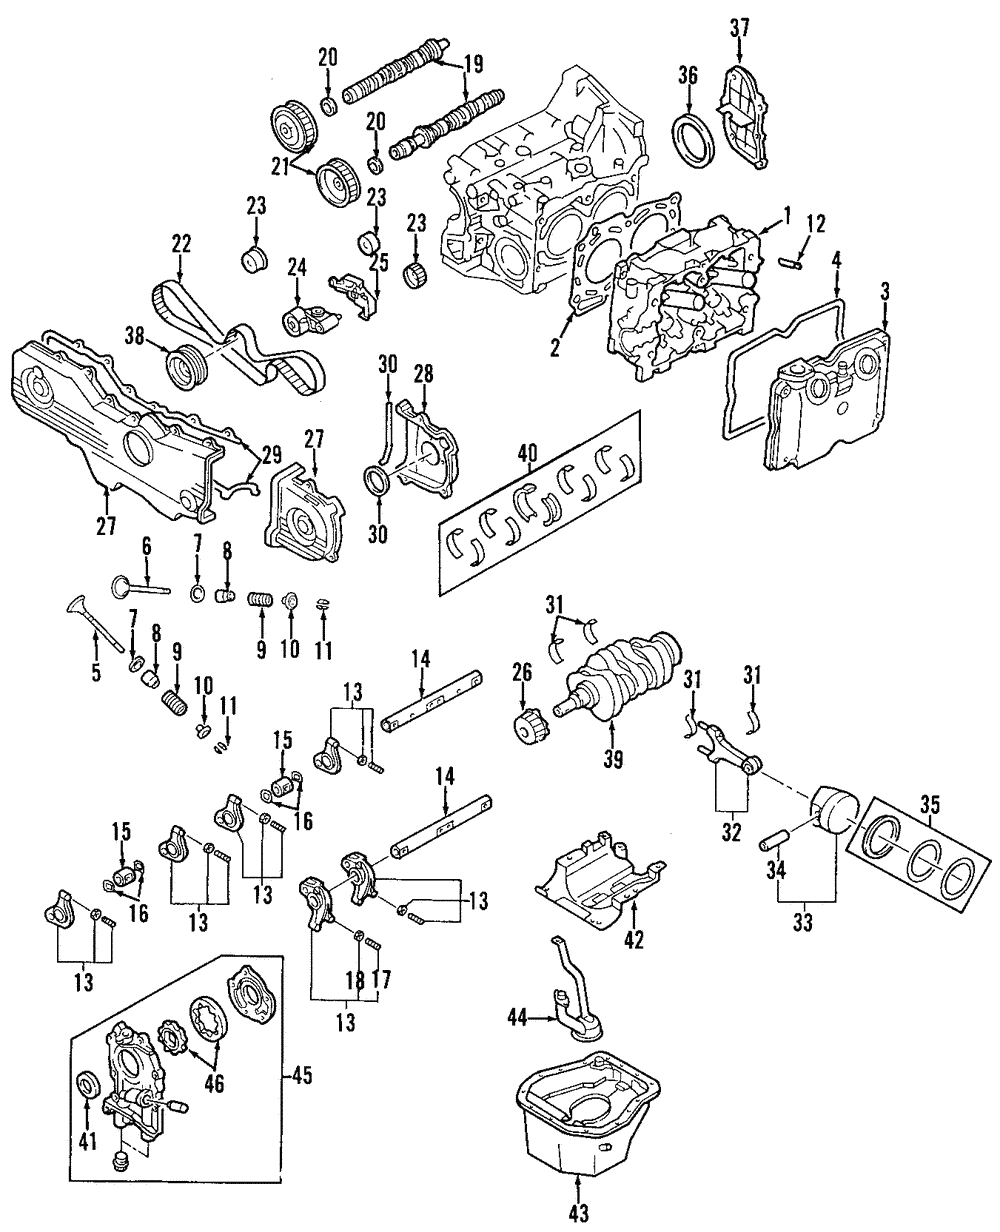 medium resolution of part can be found as 13 in the diagram above genuine subaru parts